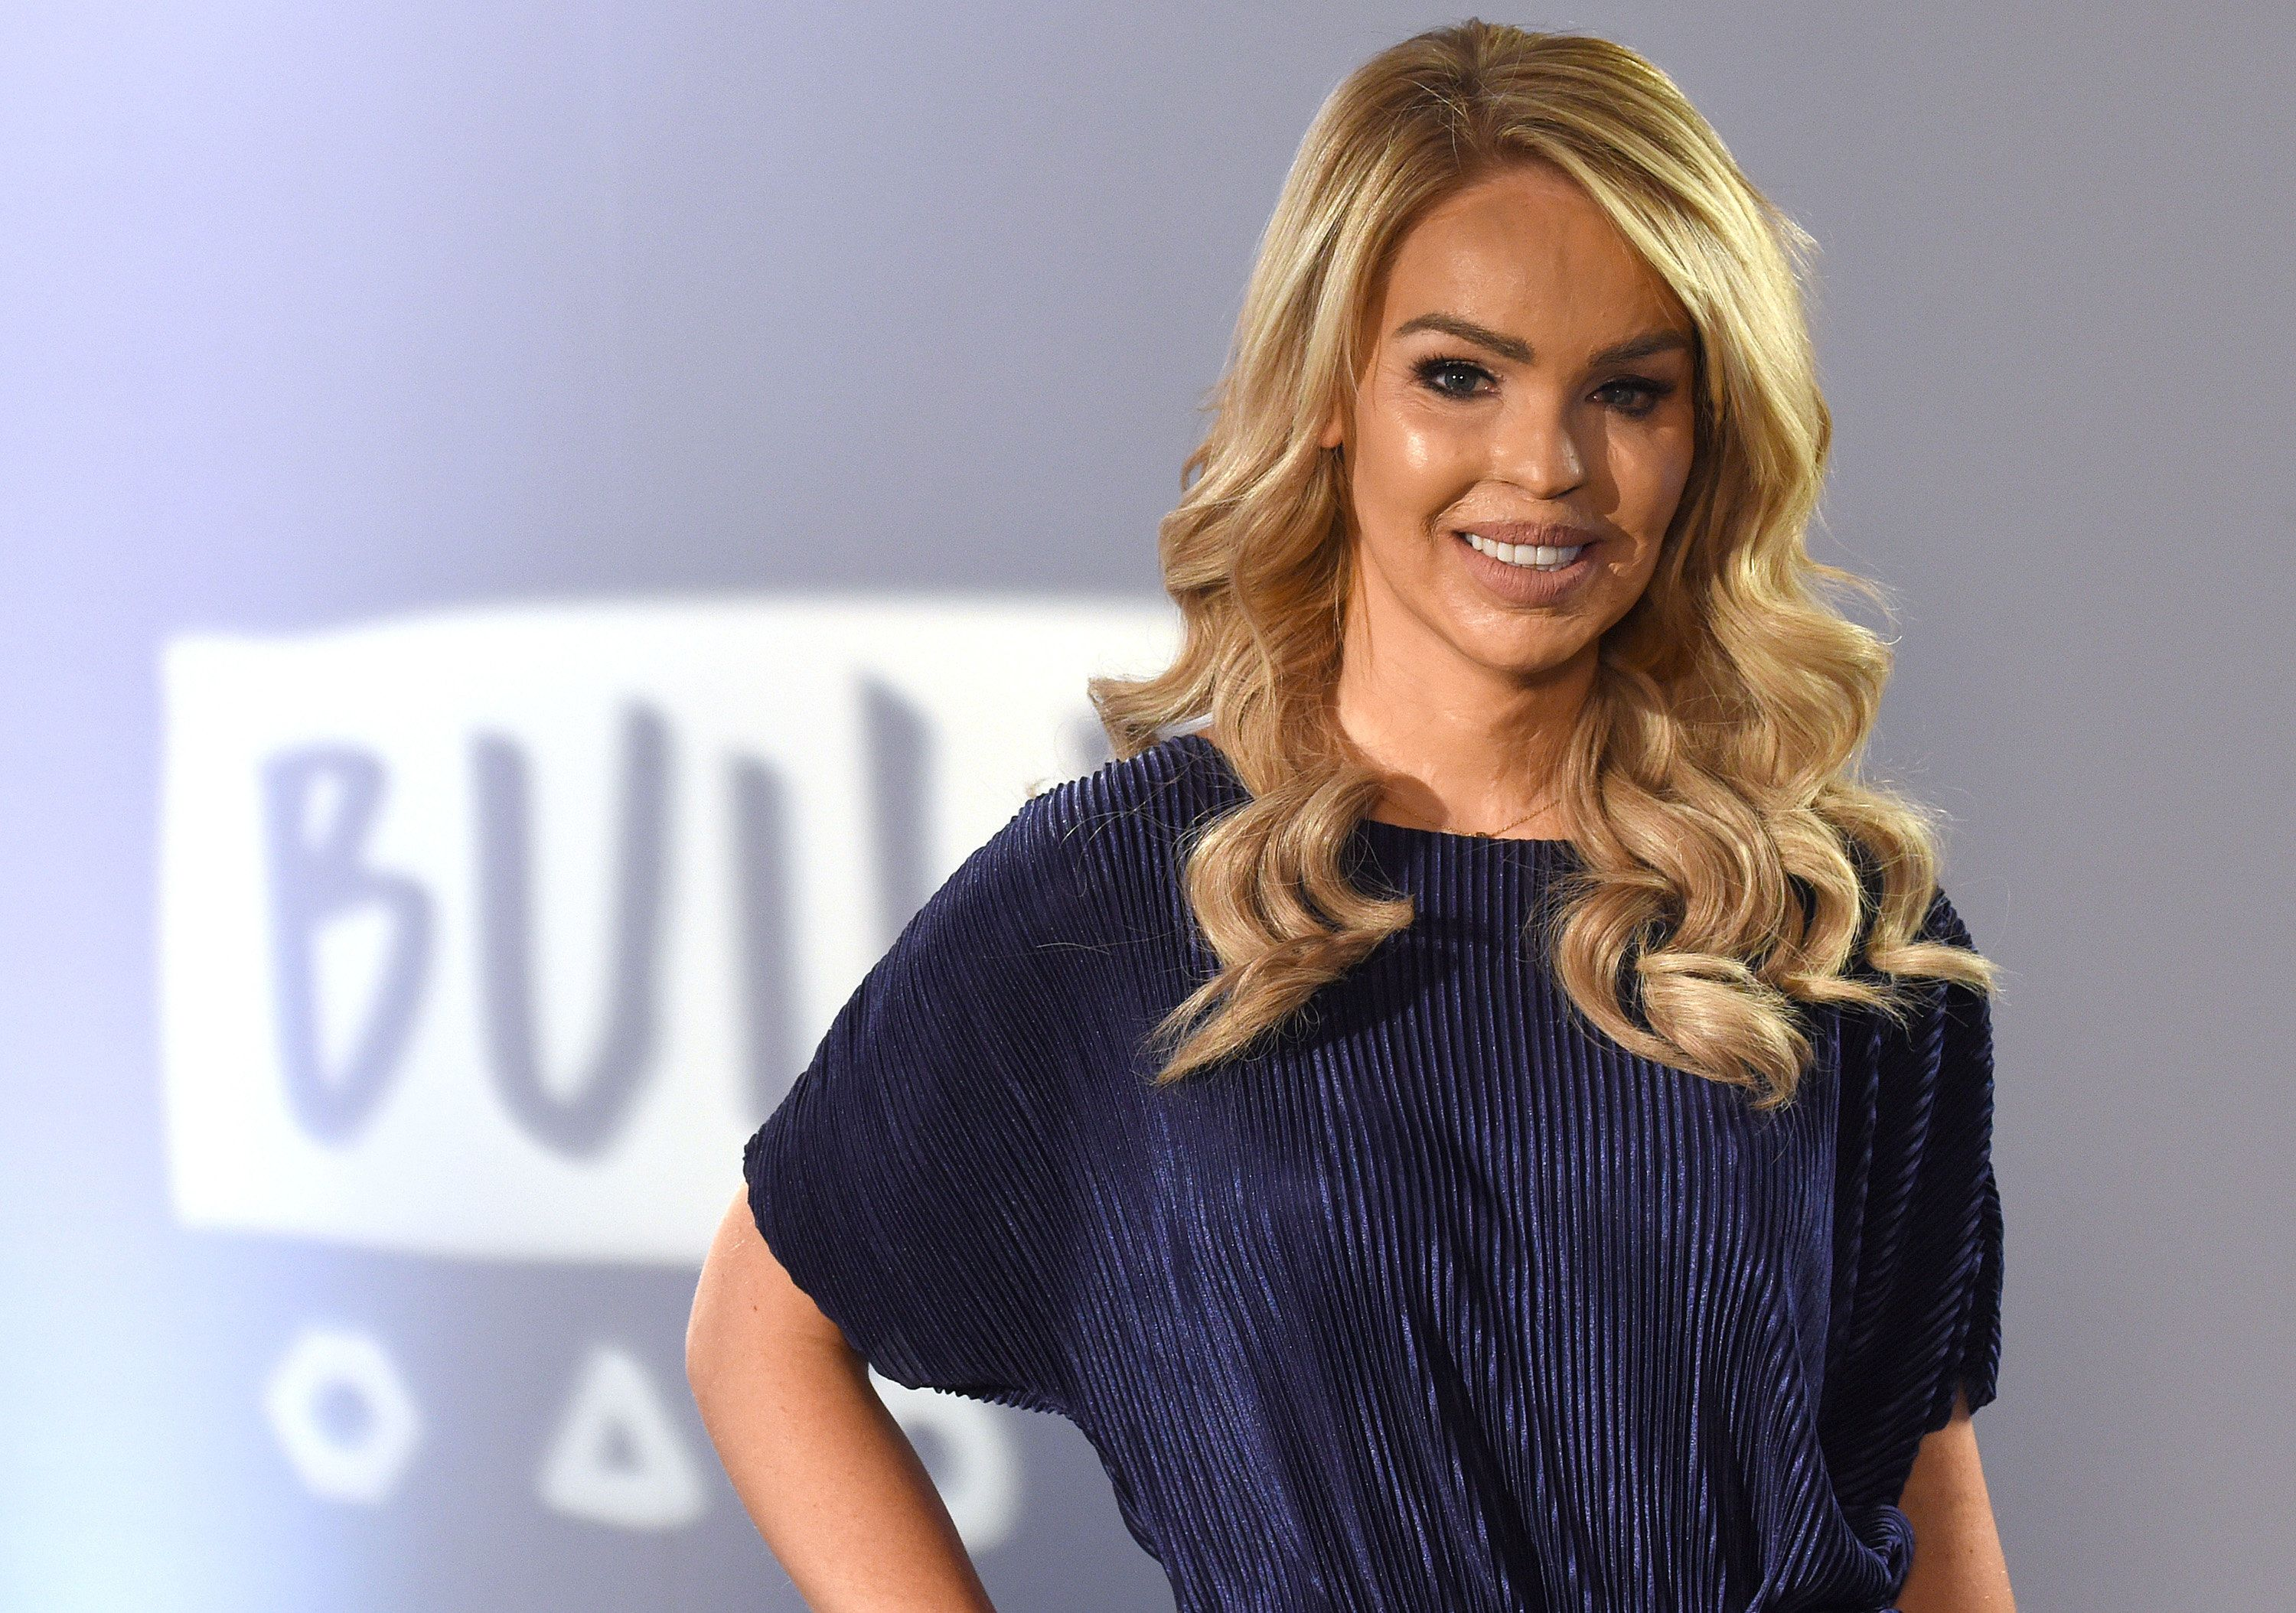 Katie Piper Reveals Why She Won't Be Going To Watch The Film Of Her Life